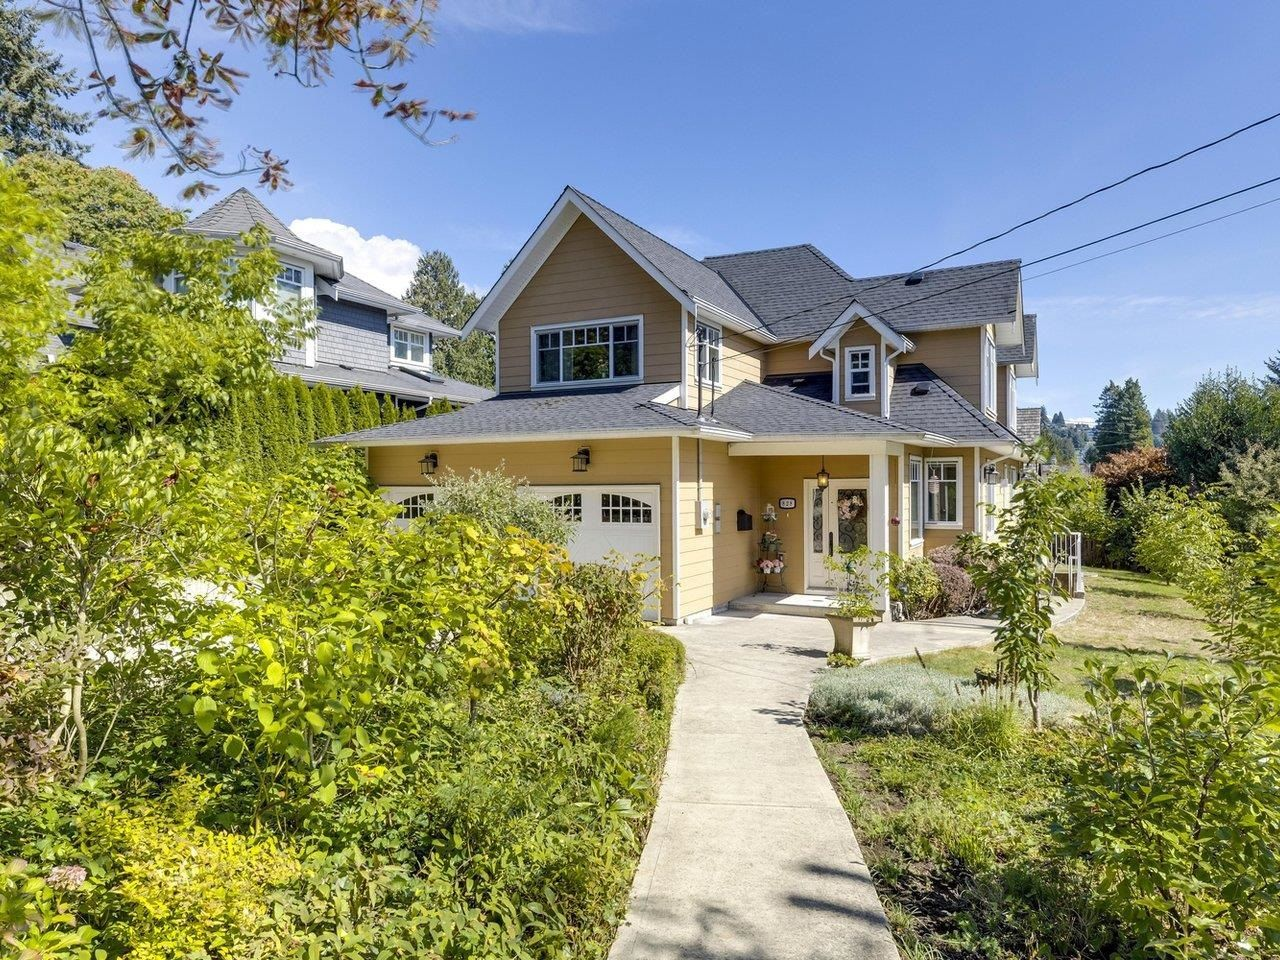 Main Photo: 828 17TH Street in West Vancouver: Ambleside House for sale : MLS®# R2616452